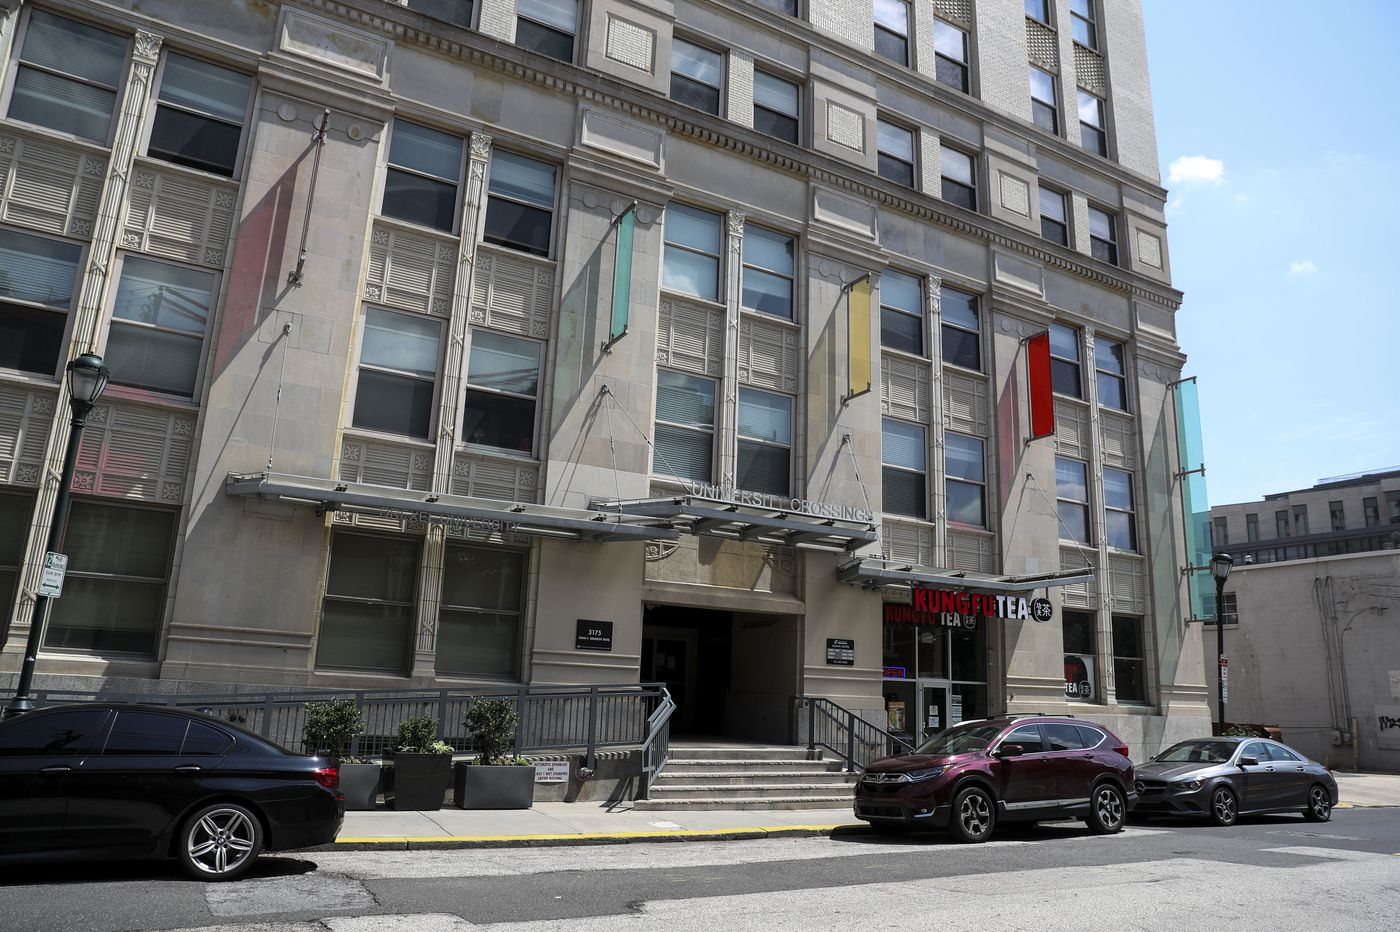 Philly-area college students signed leases months ago for fall housing. Now, many aren't coming to campus but are legally required to pay.